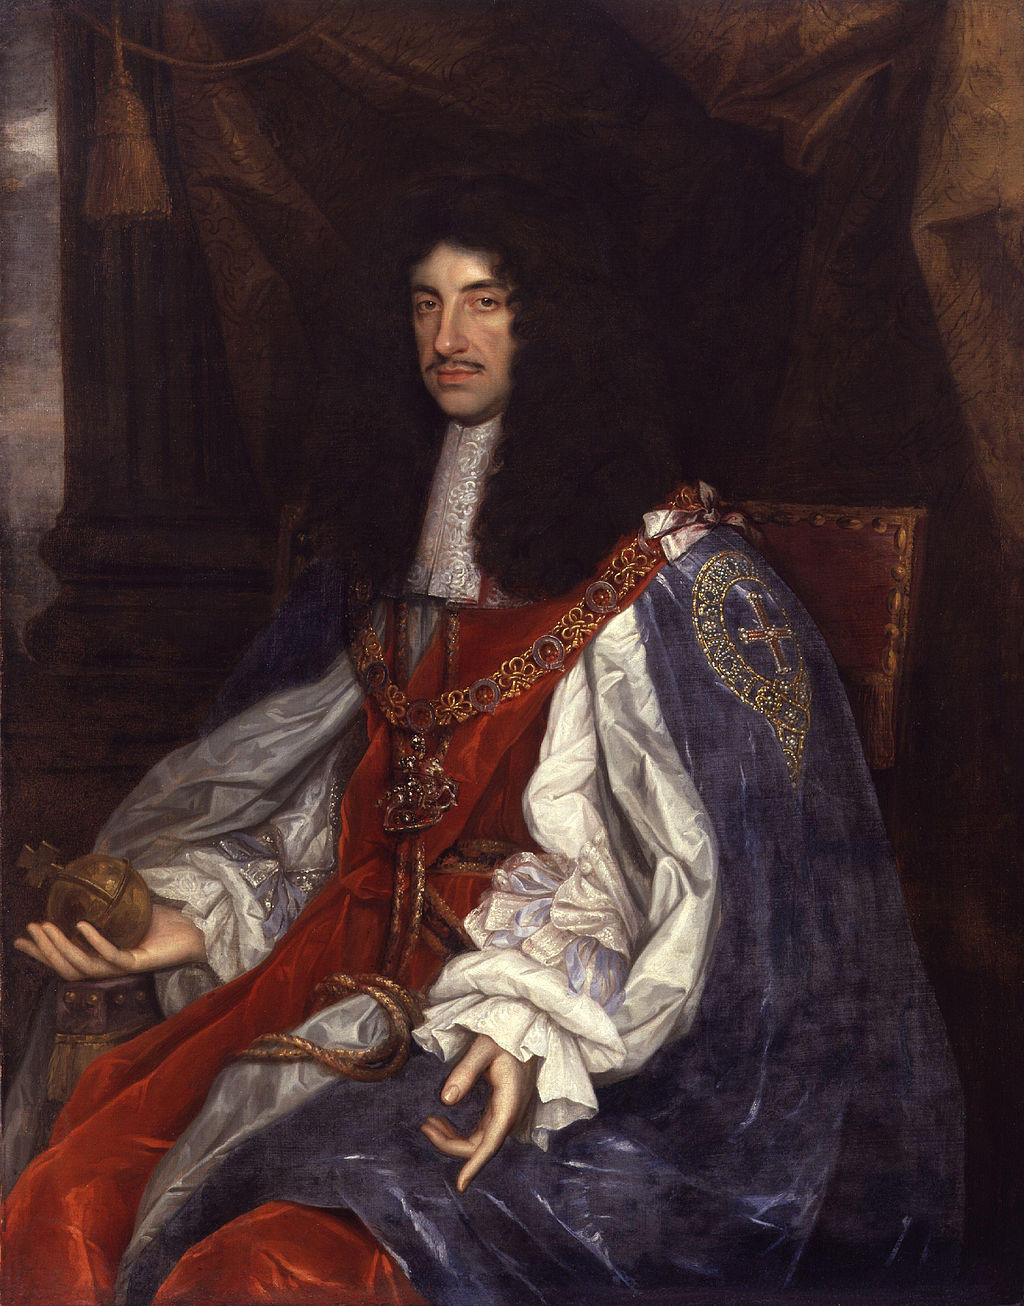 Charles_II_by_John_Michael_Wright_or_studio